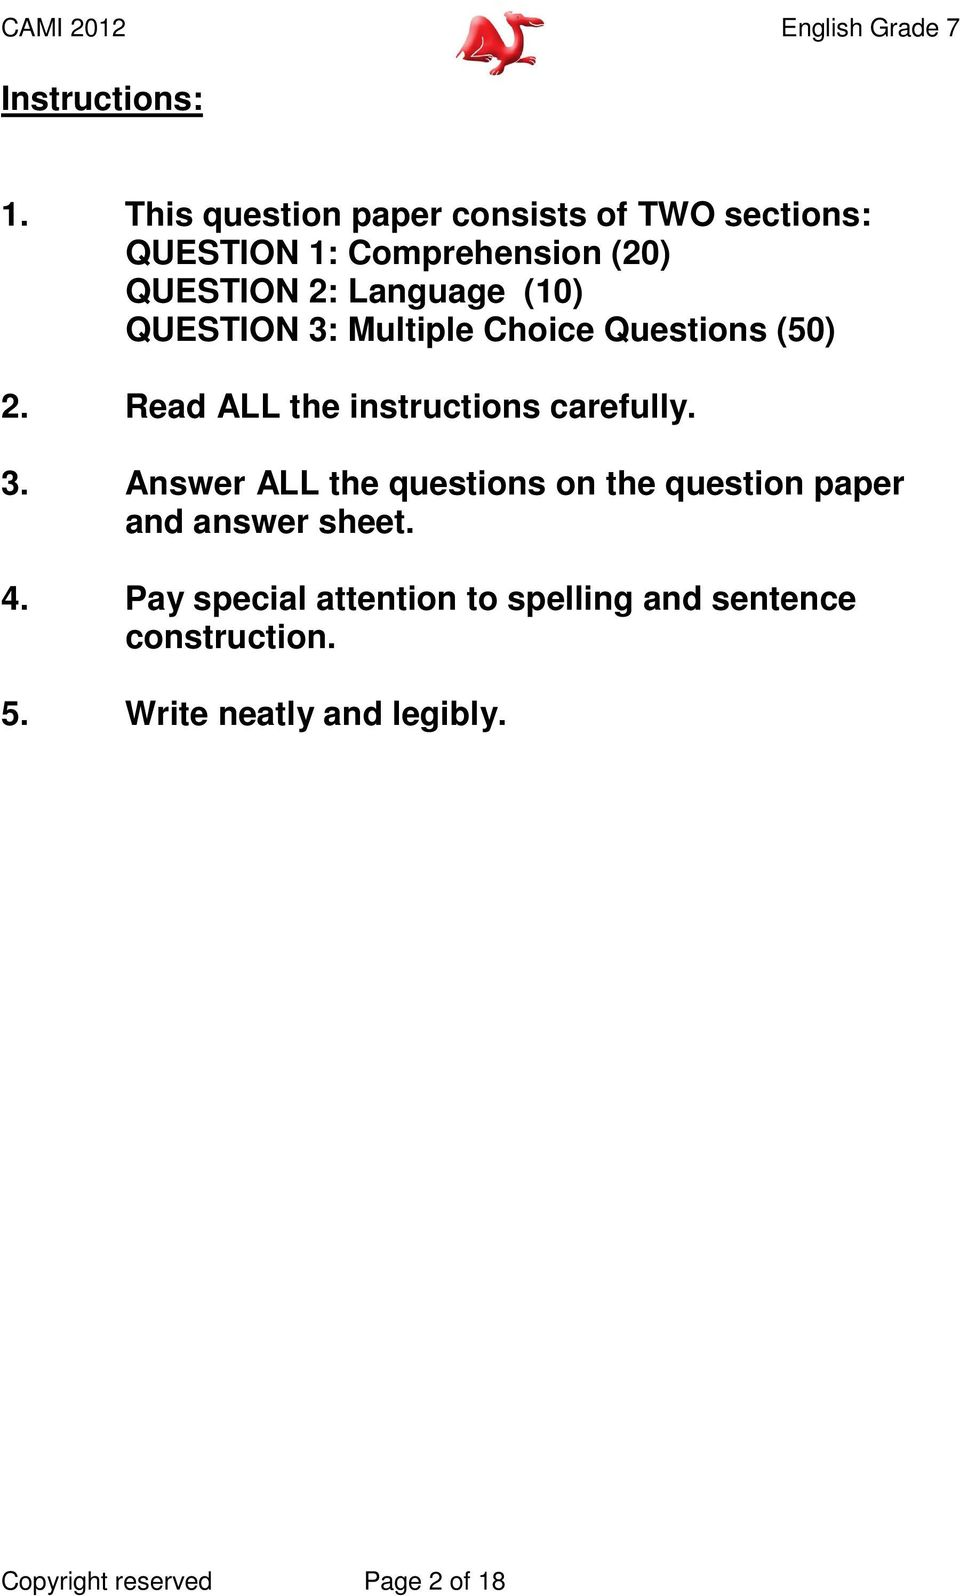 (10) QUESTION 3: Multiple Choice Questions (50) 2. Read ALL the instructions carefully. 3. Answer ALL the questions on the question paper and answer sheet.